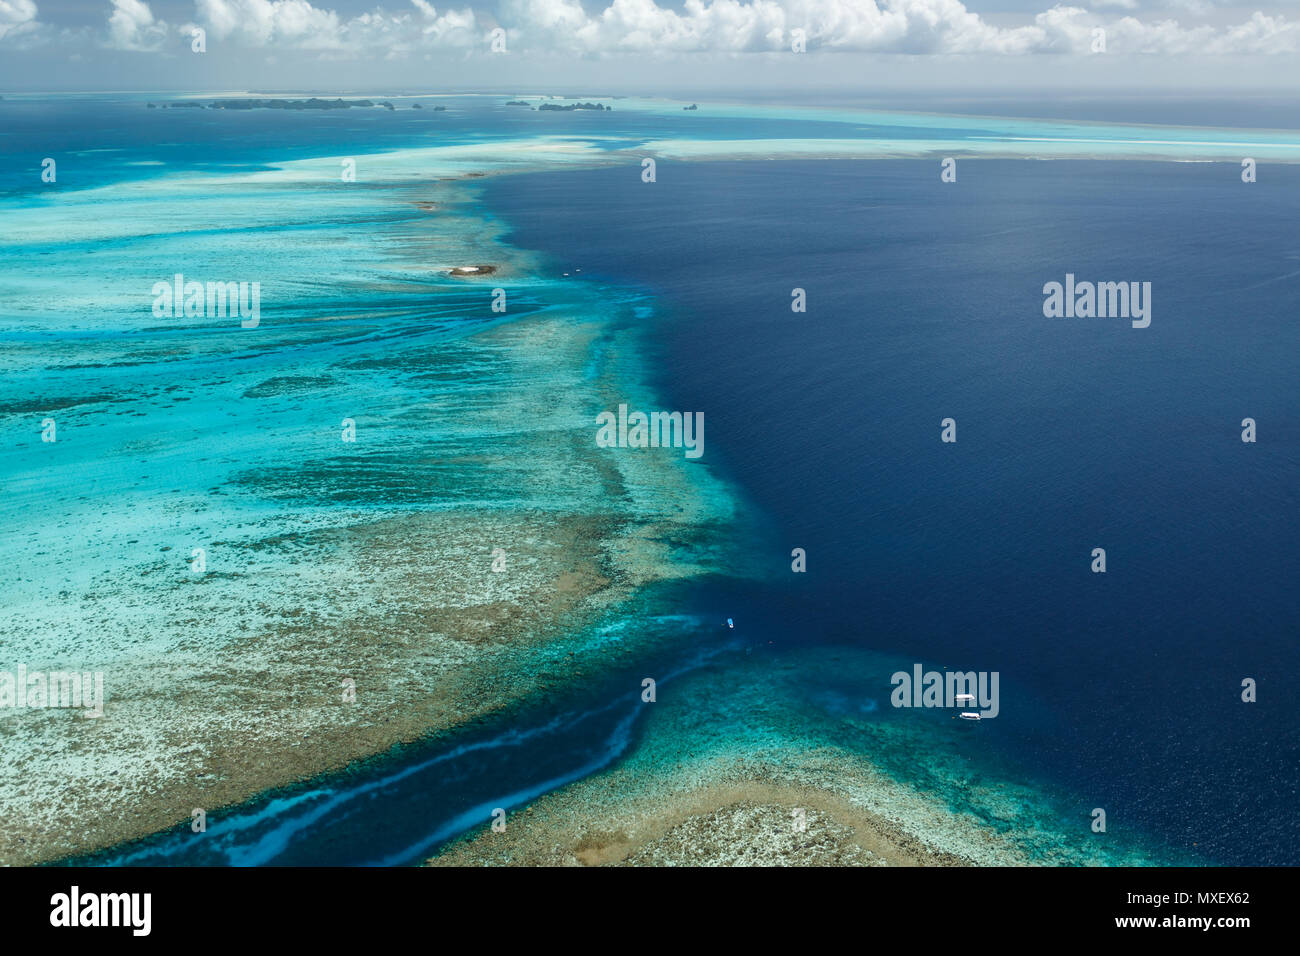 Colorful aerial view of large sweep of coral reefs and  tiny white sandbar islands with large tour boats traveling nearby - Stock Image